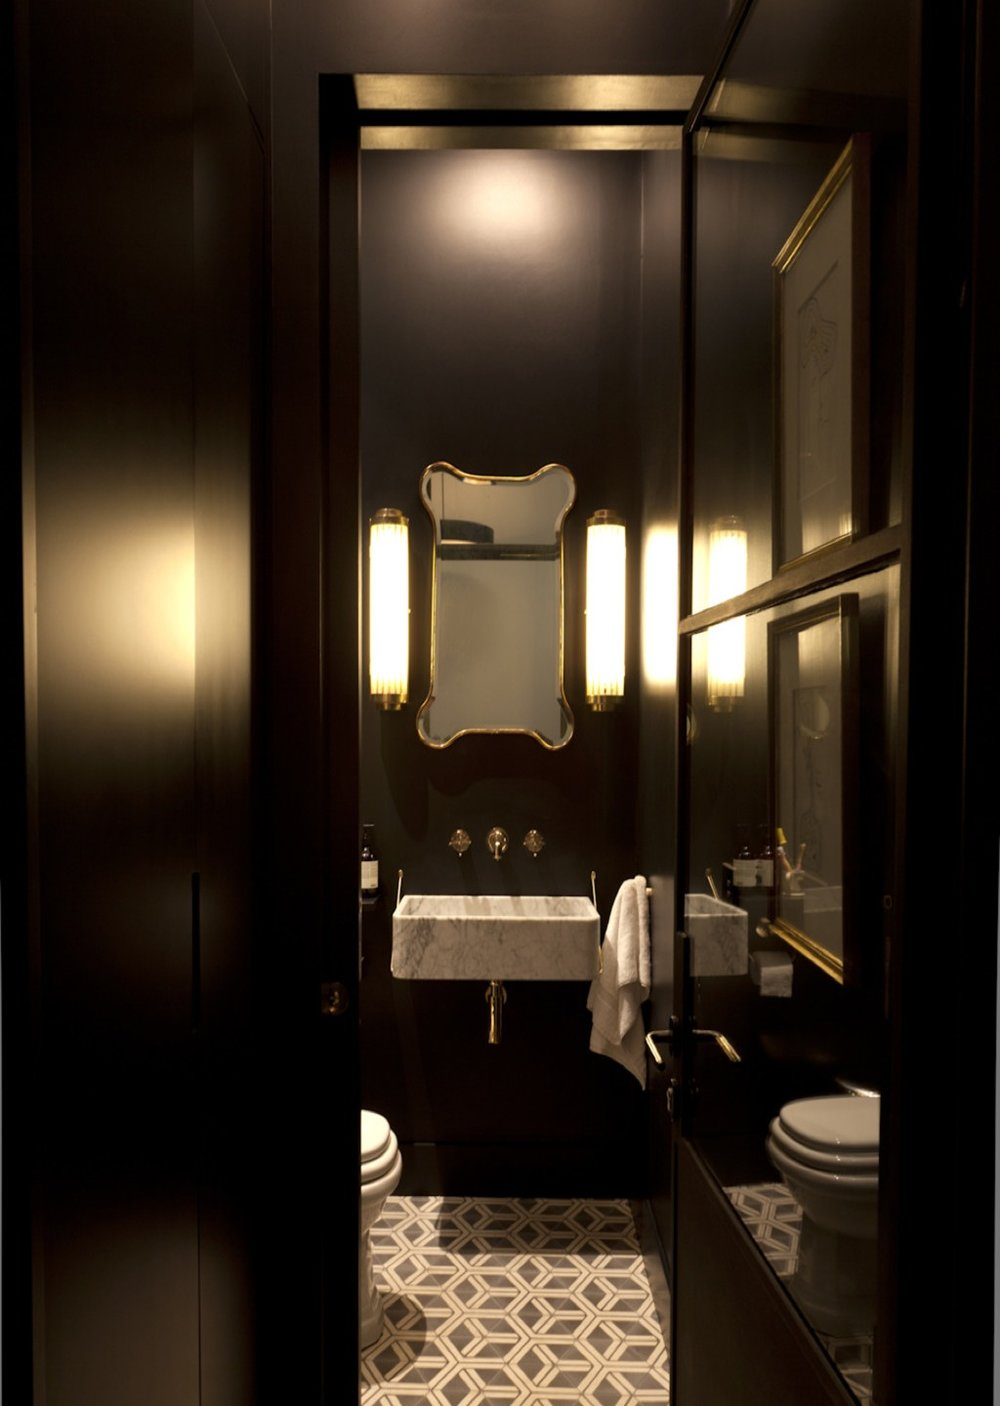 The powder room becomes glamorous in black and golden touches. Linking the hallway and the study, the Hex Arrow brings the final touch to the space.